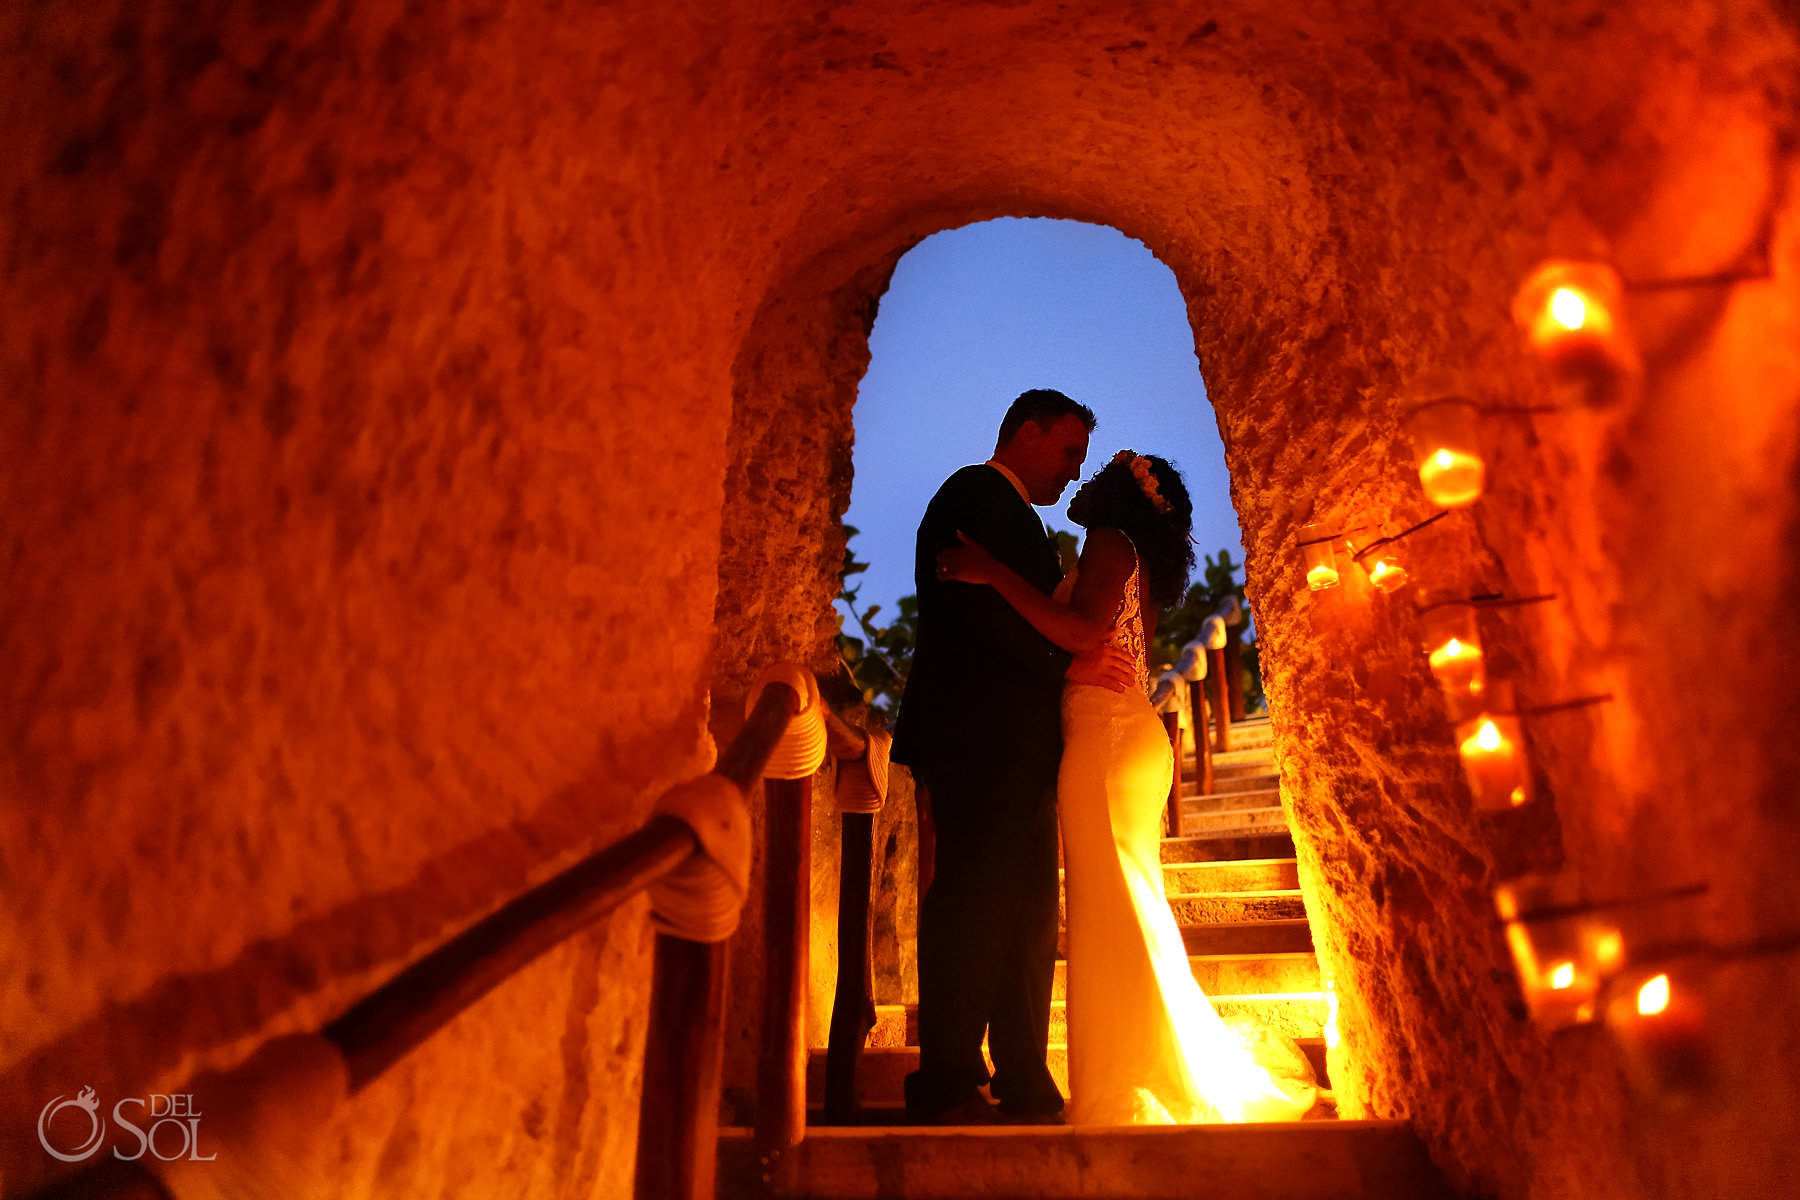 romantic wedding portrait candlelit tunnel hotel Xcaret Mexico Caleta